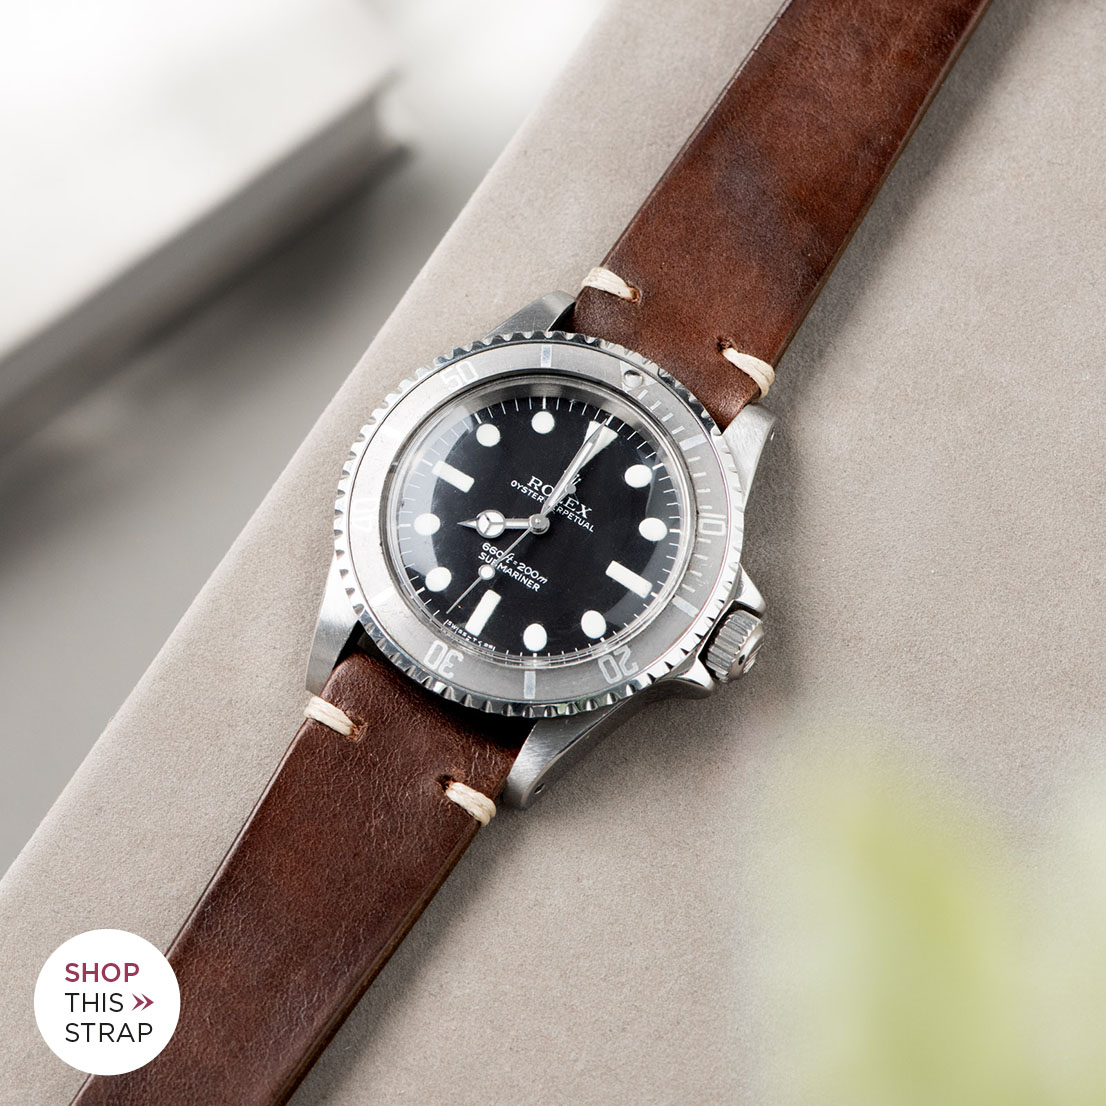 Bulang and Sons_Strap Guide_Rolex Submariner 5513 Faded_LUMBERJACK BROWN LEATHER WATCH STRAP